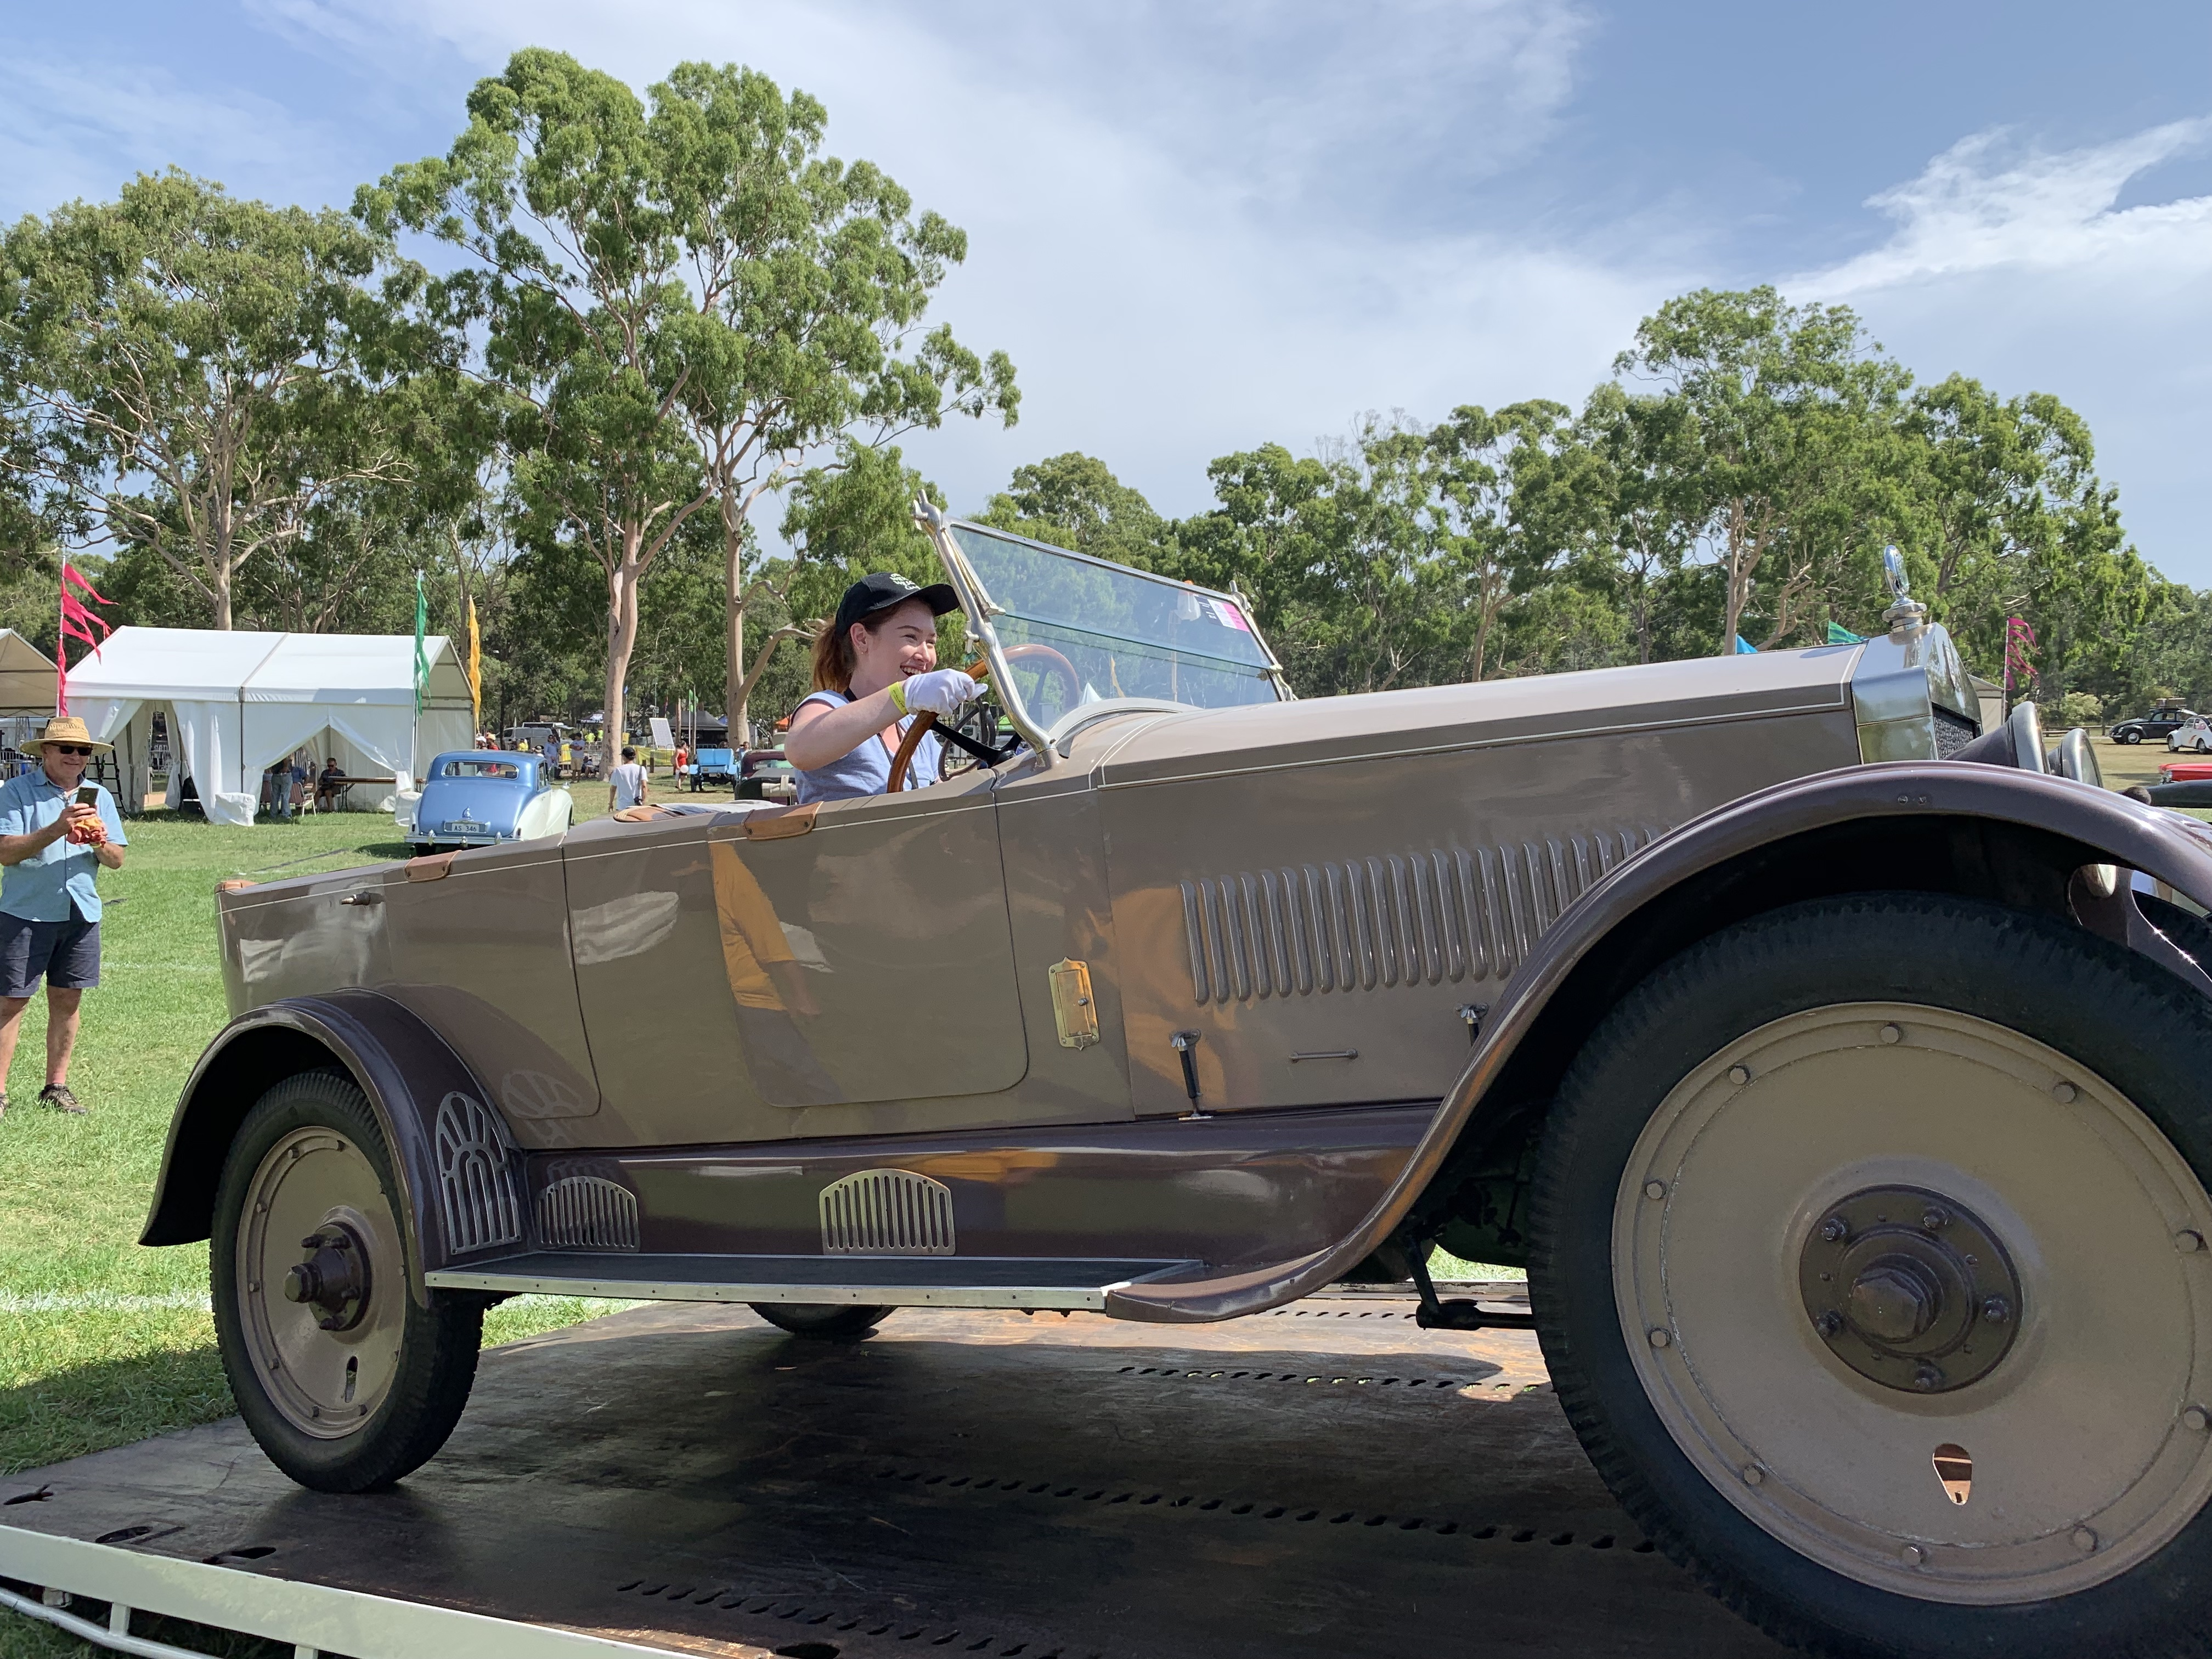 Pale woman in a light blue t-shirt and a black cap wearing white cotton gloves is steering a dark and light brown classic car onto a trailer of a low loader. A man wearing a blue button-down shirt, blue shorts and a straw hat is in the background to the left side taking photos on a phone.